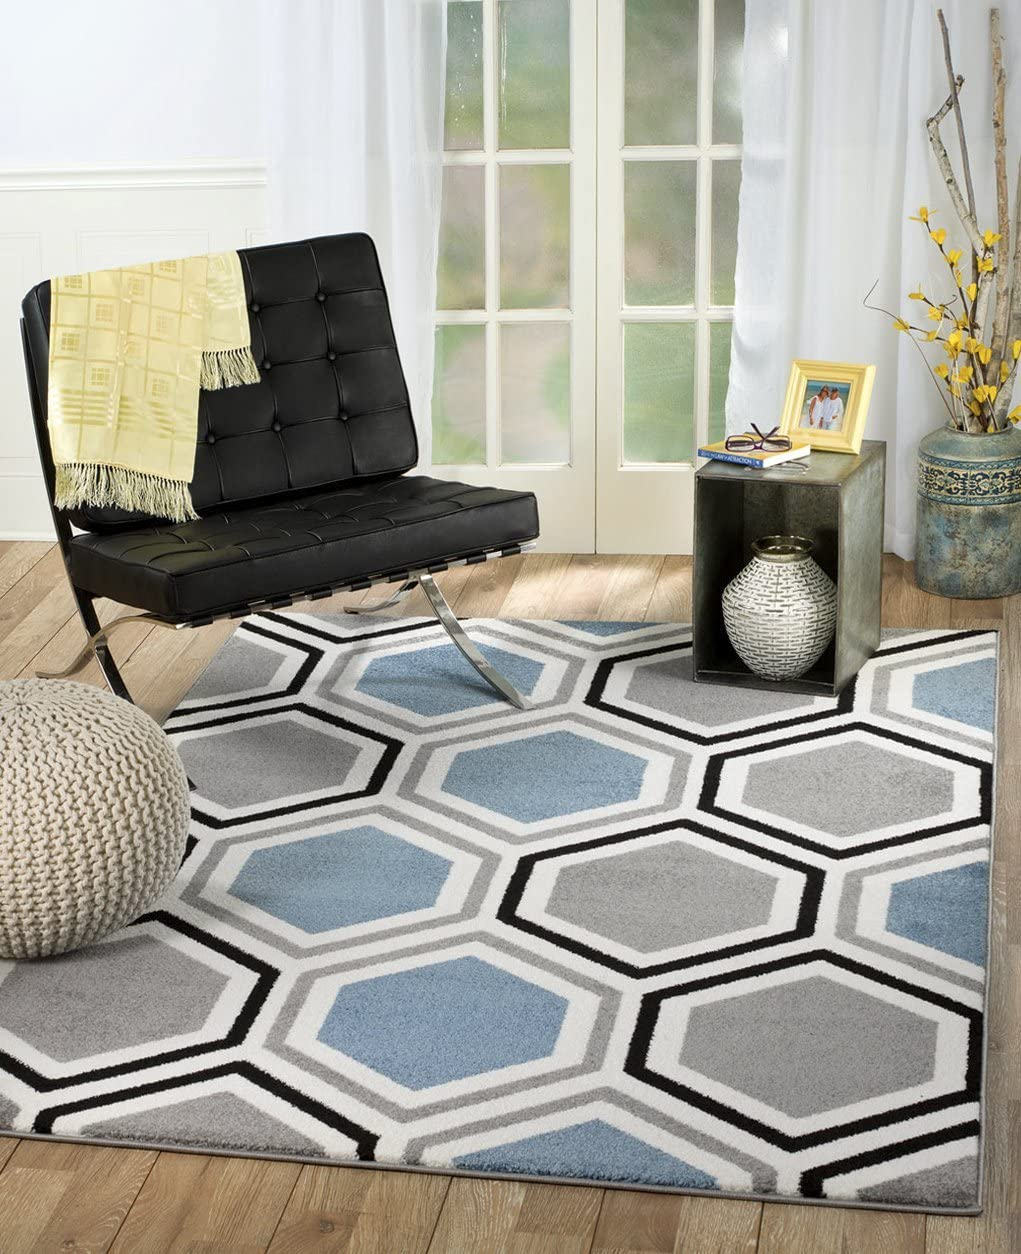 Rio Summit 313 Grey Blue White Area Rug Modern Geometric Many Sizes Available 3 .6 x 5 , 3 .6 x 5